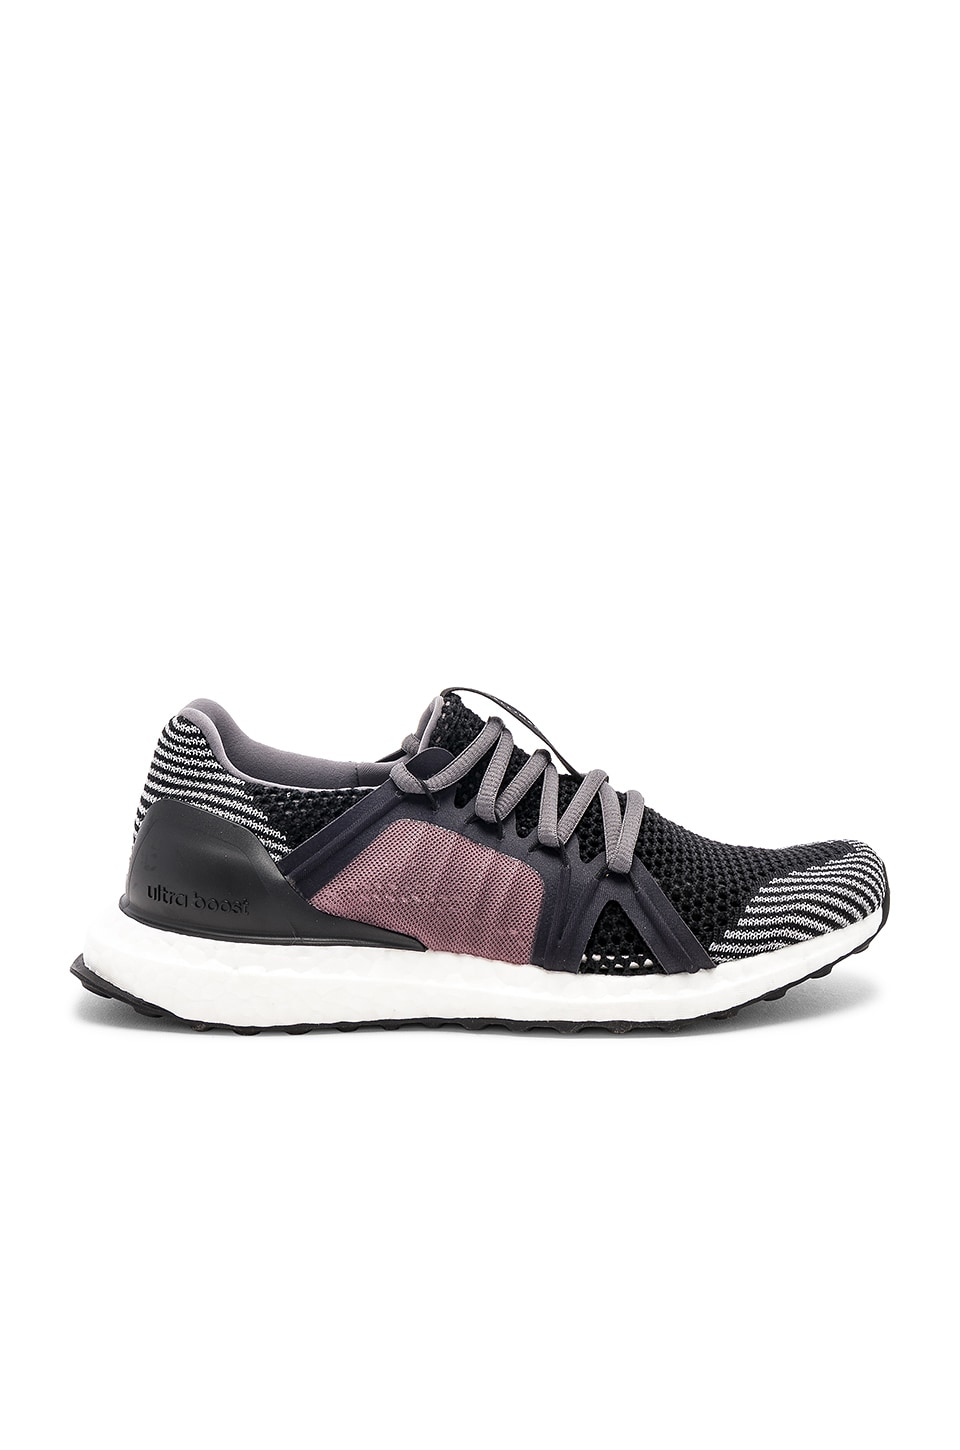 adidas by Stella McCartney UltraBOOST in Black